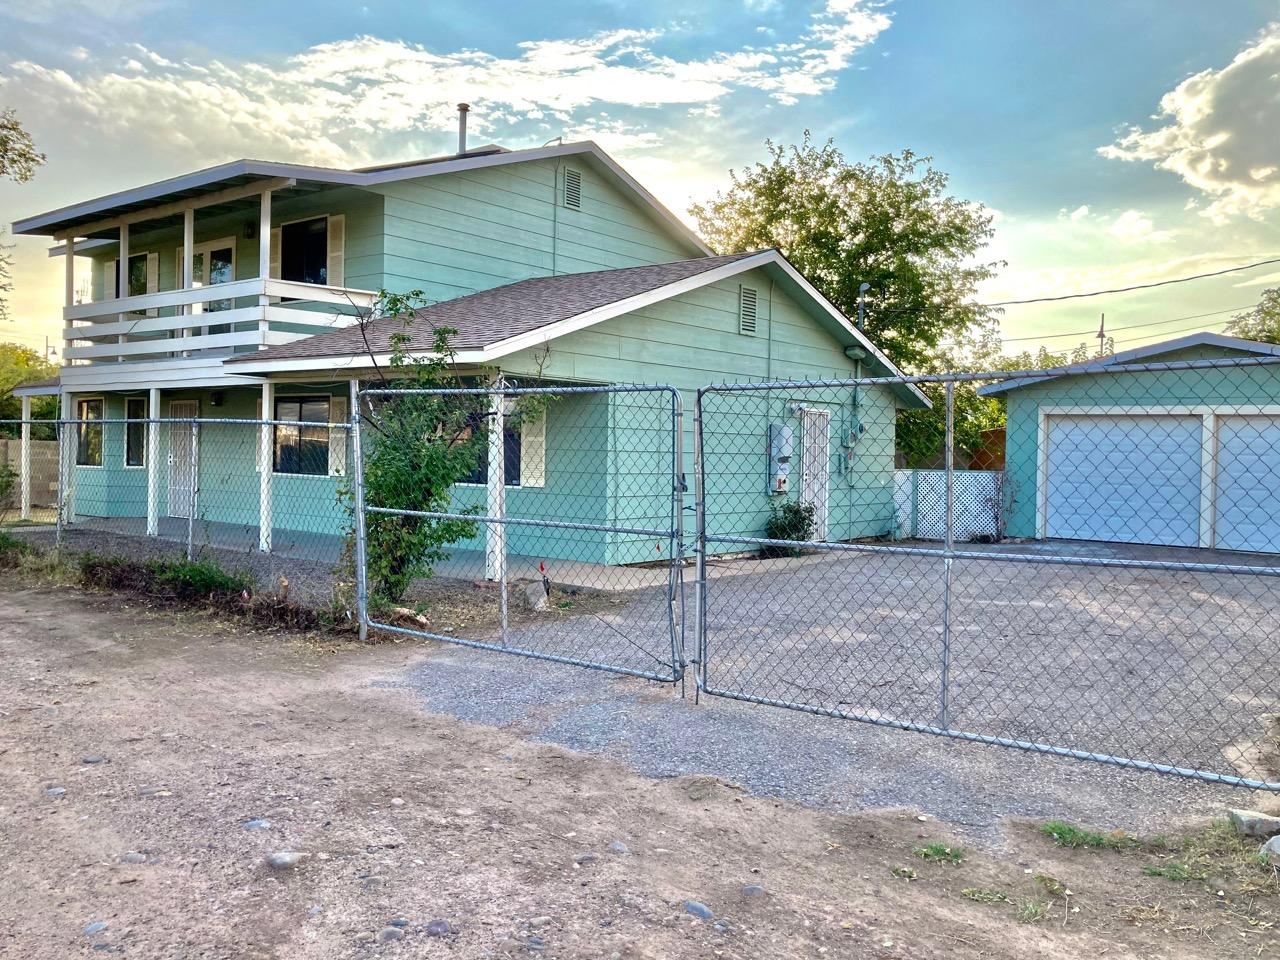 Easy access to I-25, Fenced, 1938 sq. ft., 2 story home with 4 bedrooms (one bedroom is on the first floor), 3 bathrooms, 2+ living spaces, 2 car detached garage.  Sold ''As Is'' without any guarantee or warranty implied. Check bidding deadline/bidder eligibility. Possible insured escrow with FHA Financing. 203K Eligible. HUD Case # 361-435094.